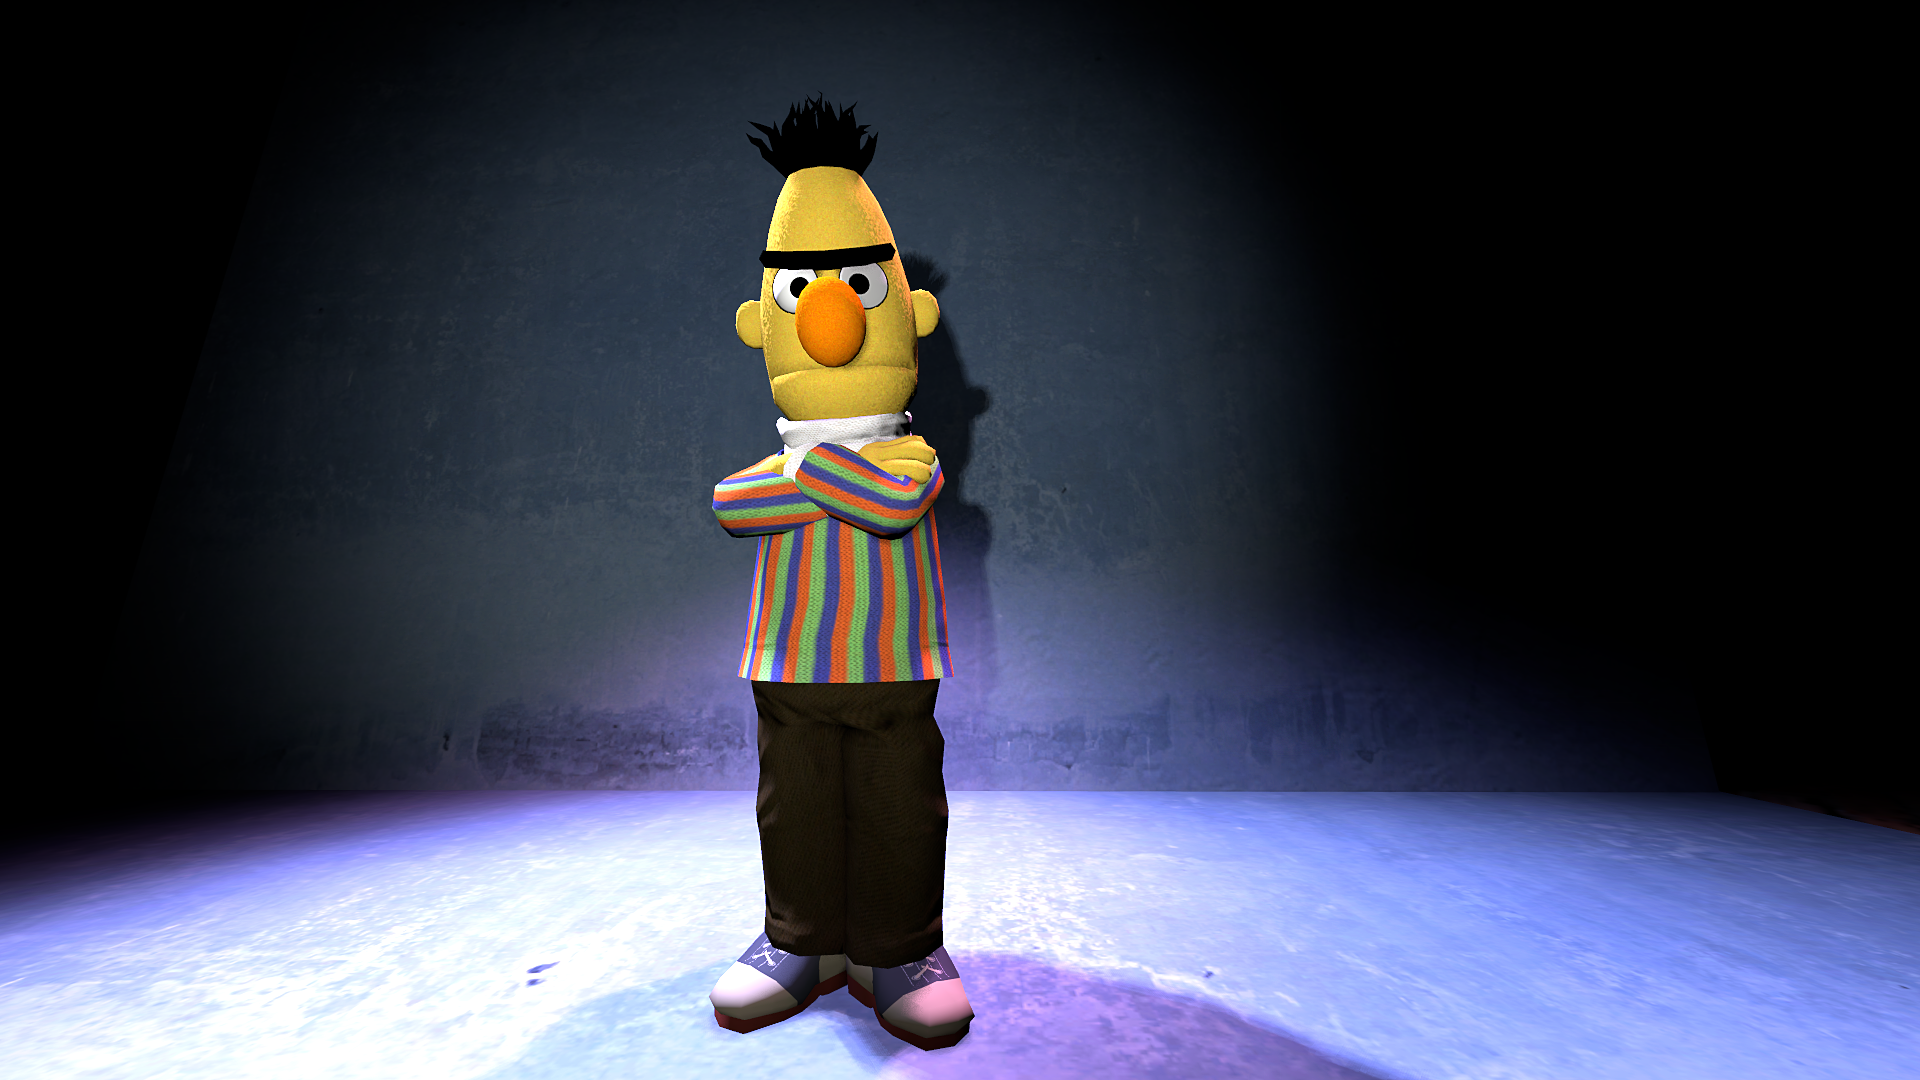 Generic test pose of my Bert model in SFM : SFM